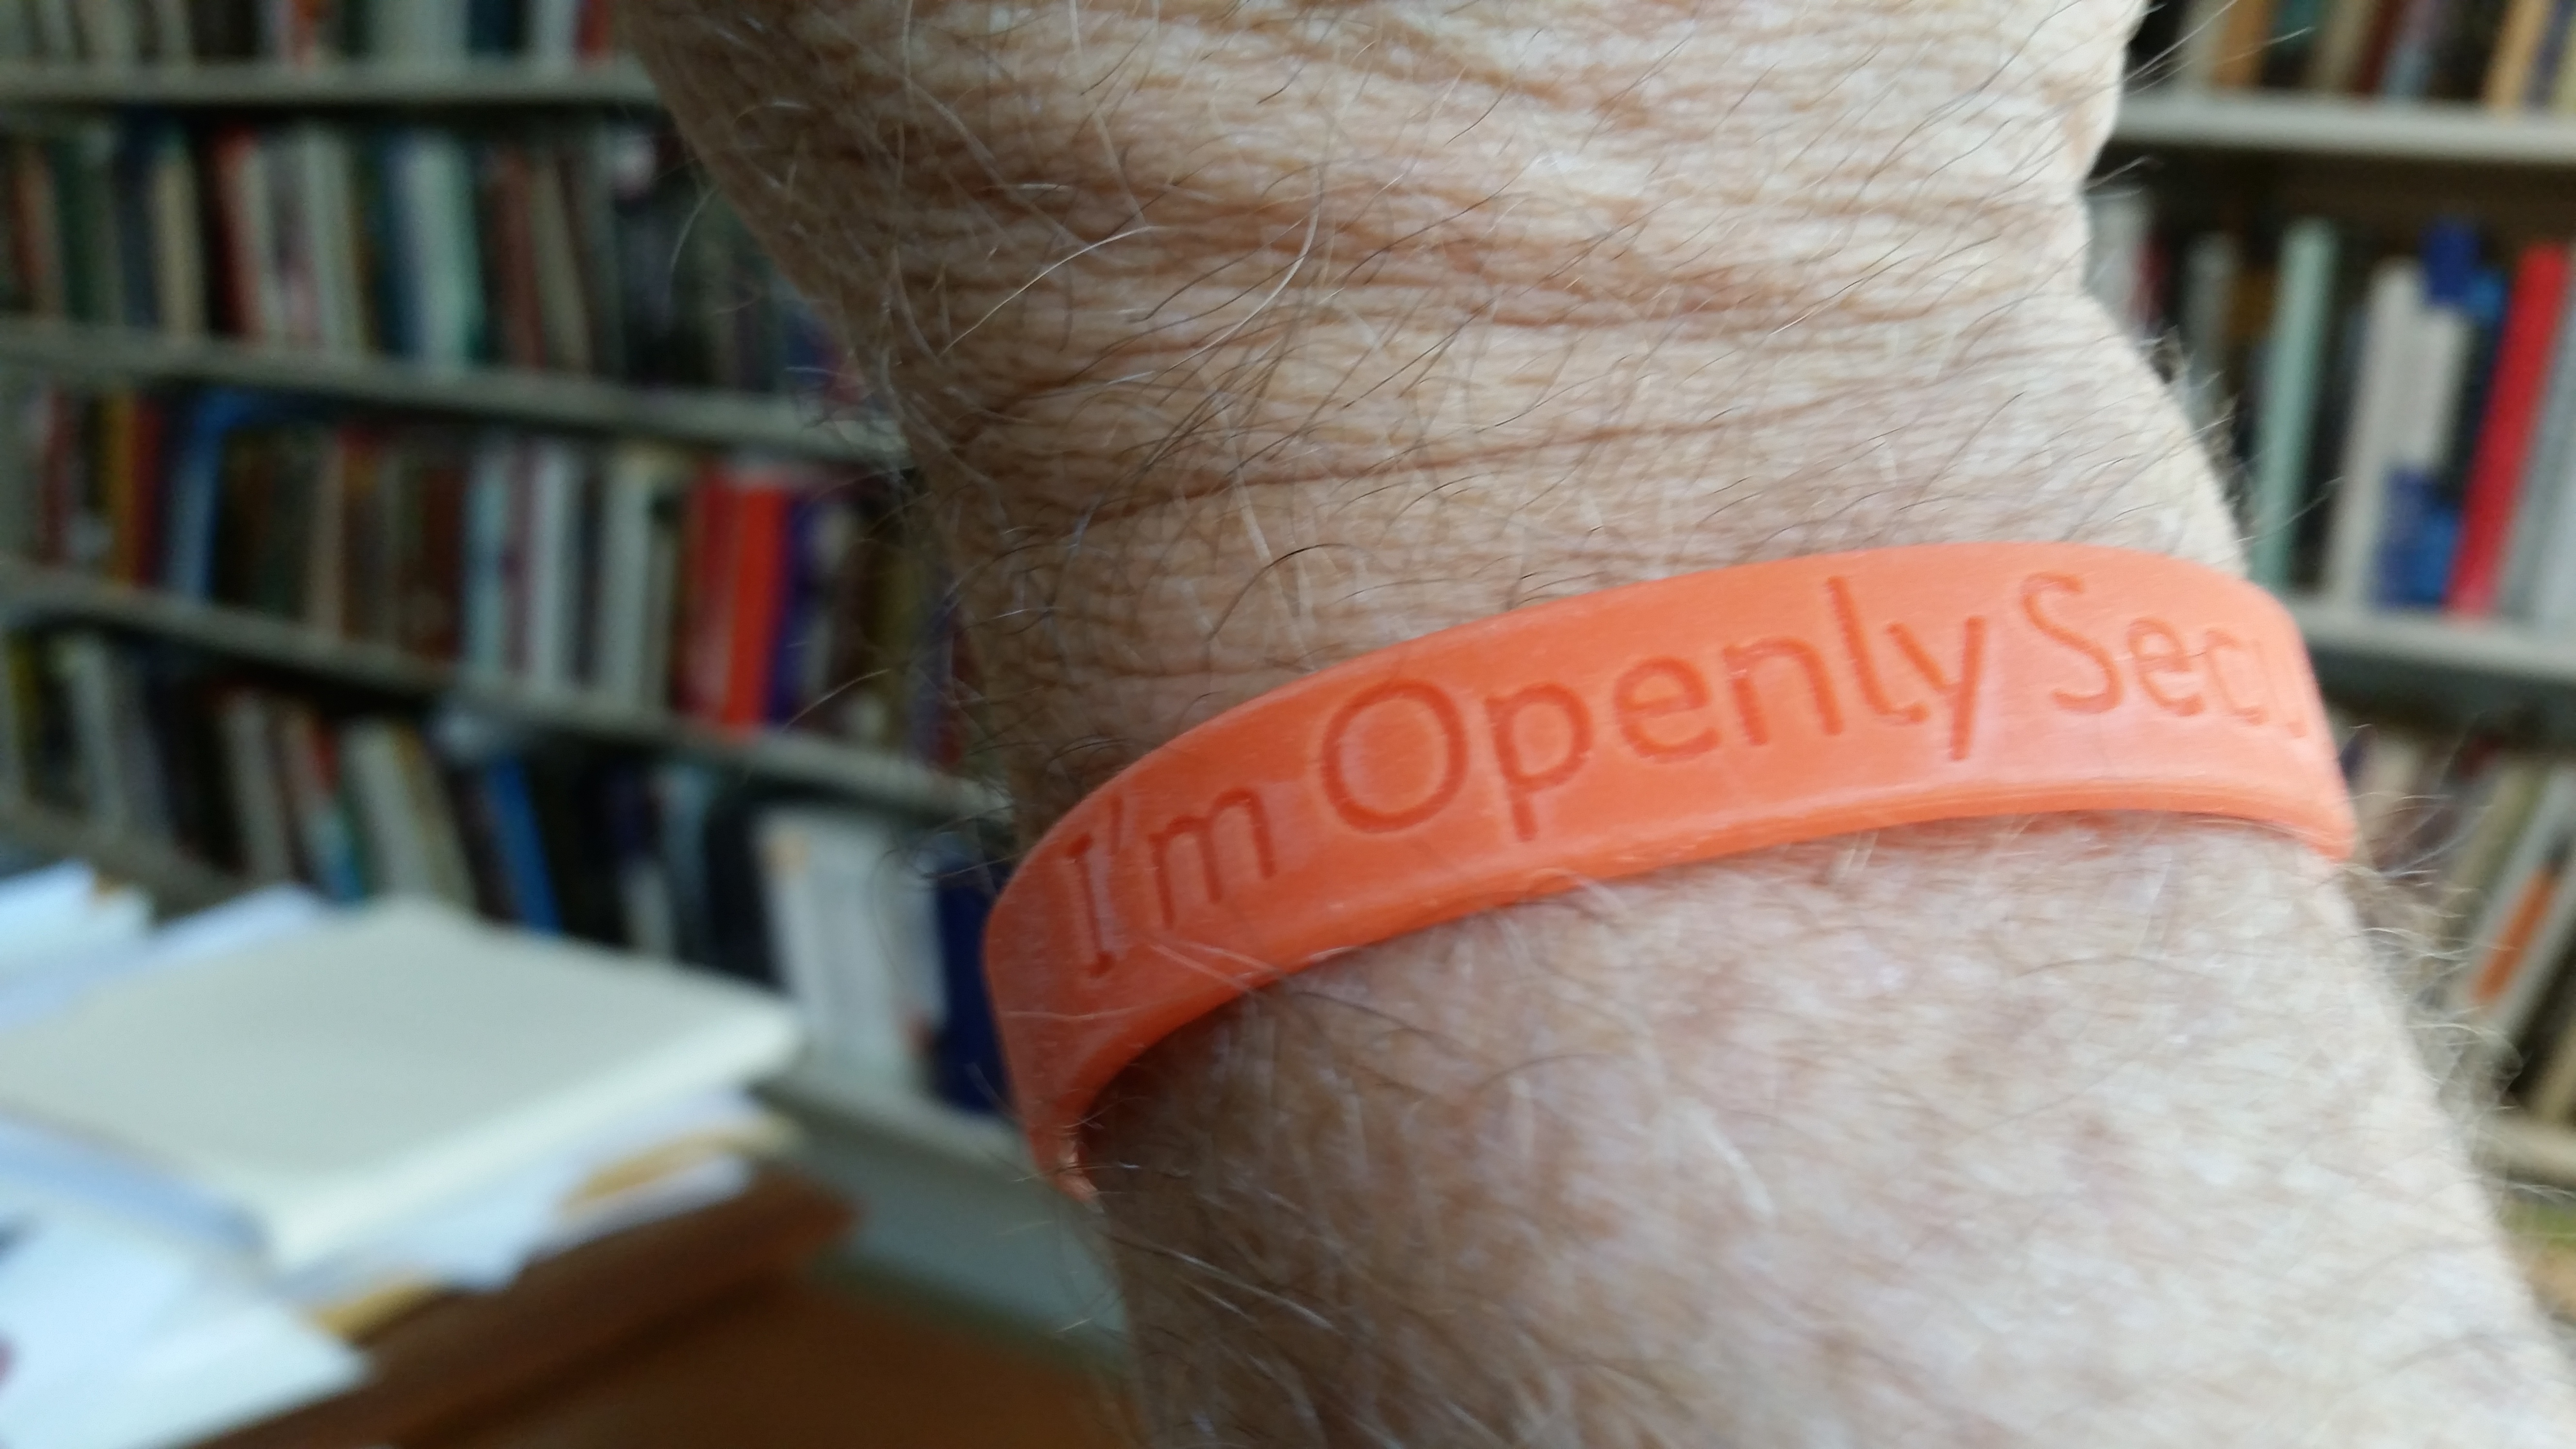 Openly Secular Coalition wristband